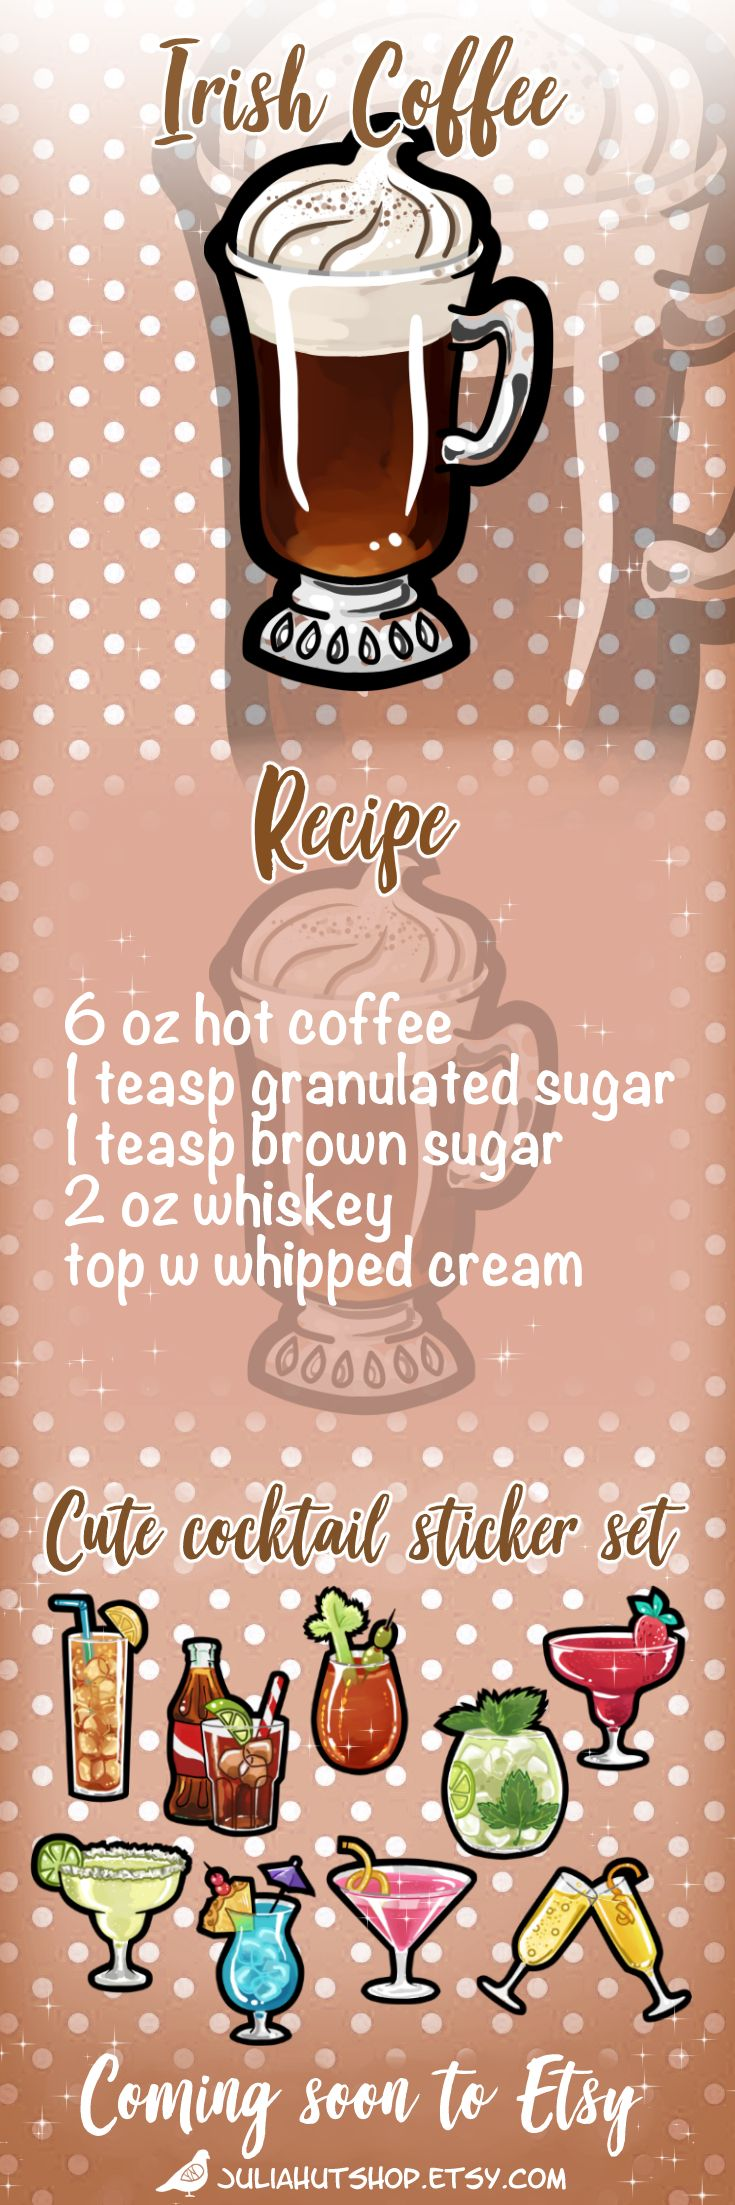 Recipe for Irish Coffee  6 oz hot fresh coffee 1 teaspoon granulated white sugar 1 teaspoon brown sugar 2 oz whiskey top with fresh whipped cream  This cocktail image is part of a sticker set, available soon from my Etsy sticker shop! #cocktailrecipe #stickerlove #brunchcocktails #plannerstickers #irishcoffee irish coffee cute cocktails sticker design etsy shop #shopowner